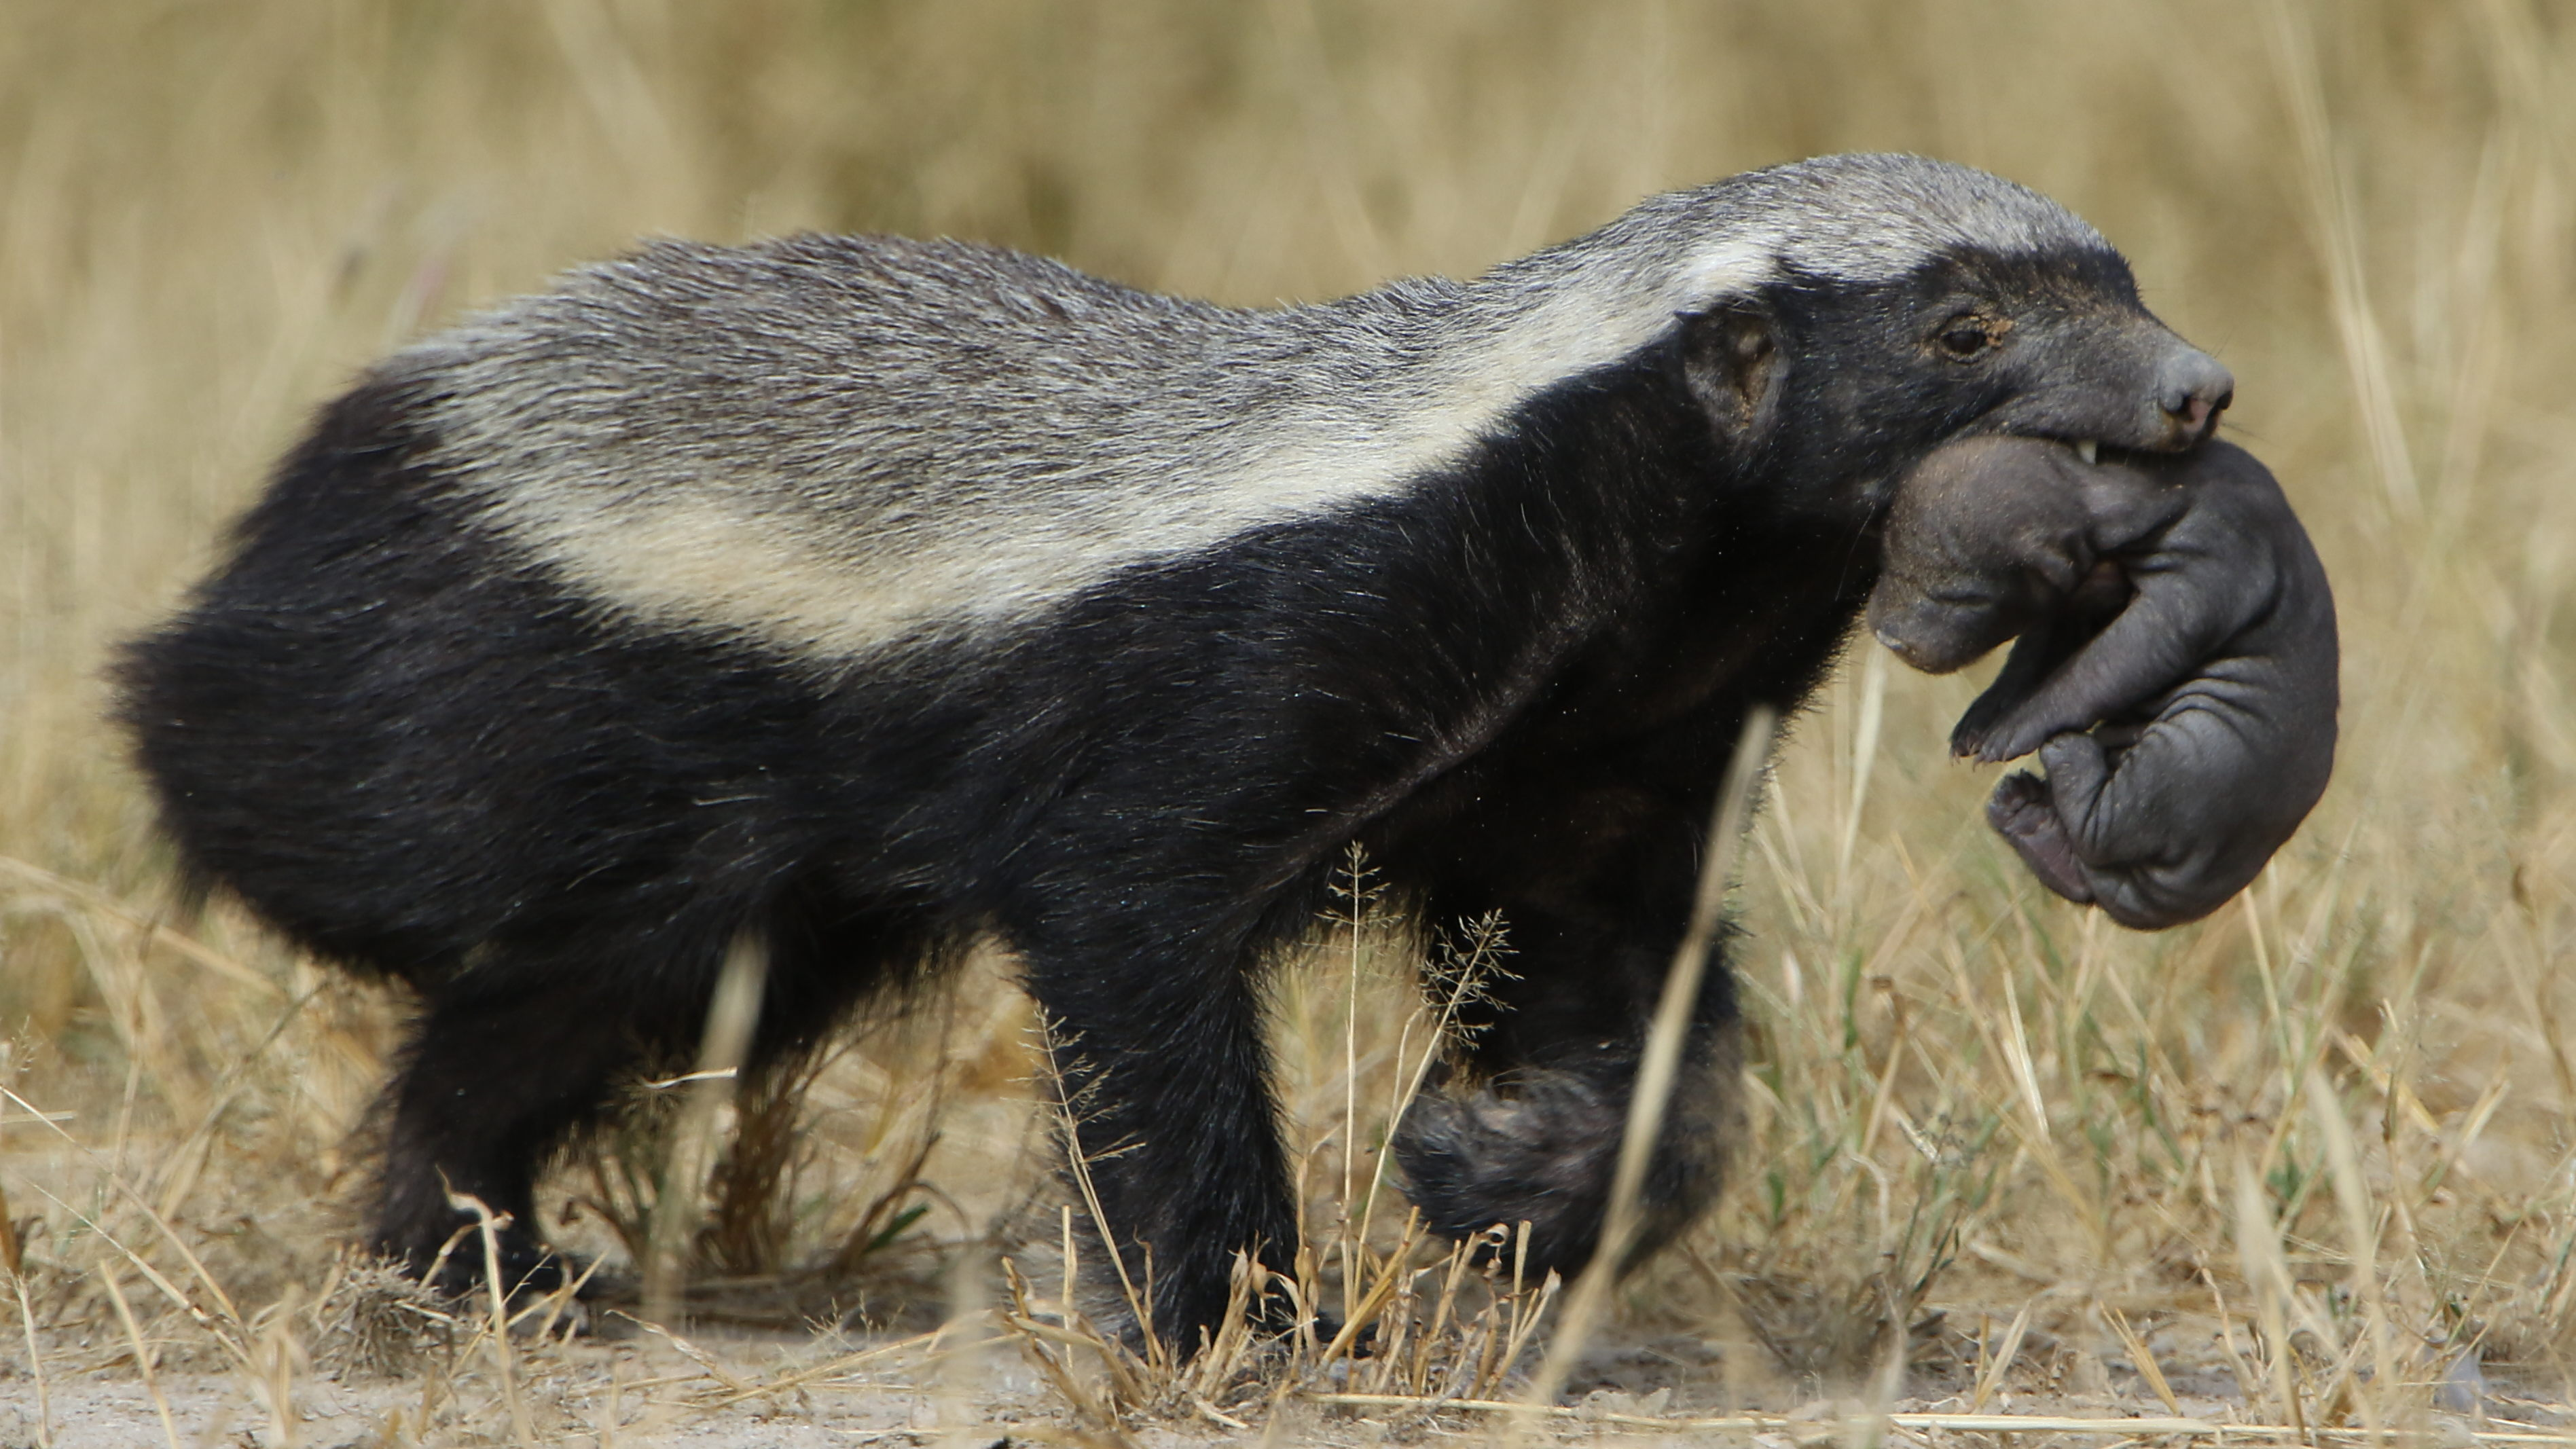 File:Honey badger, Mellivora capensis, carrying young pup ...